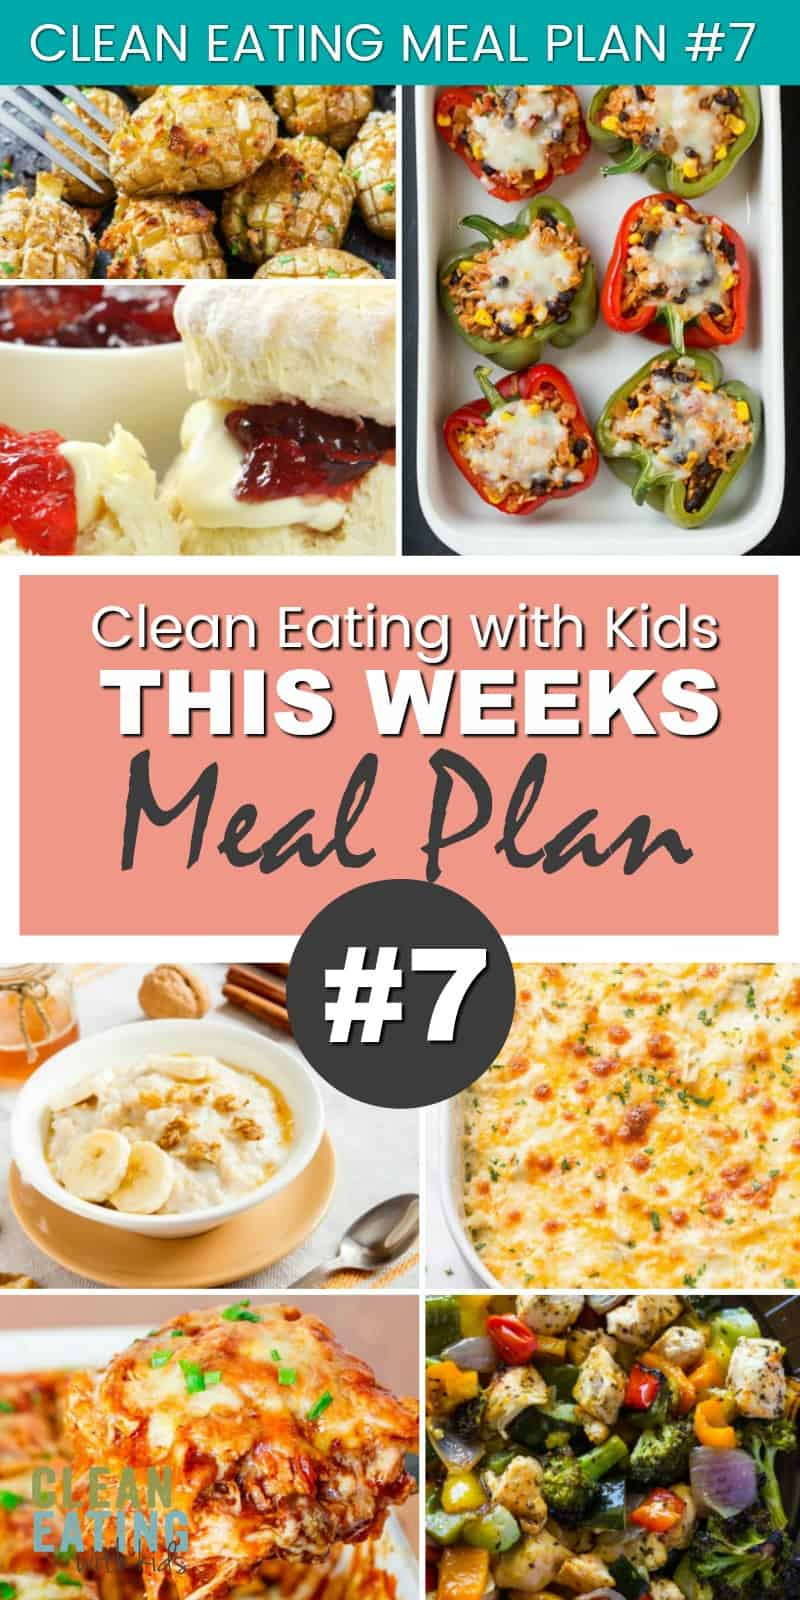 Clean Eating with Kids Family Meal Plan # 7